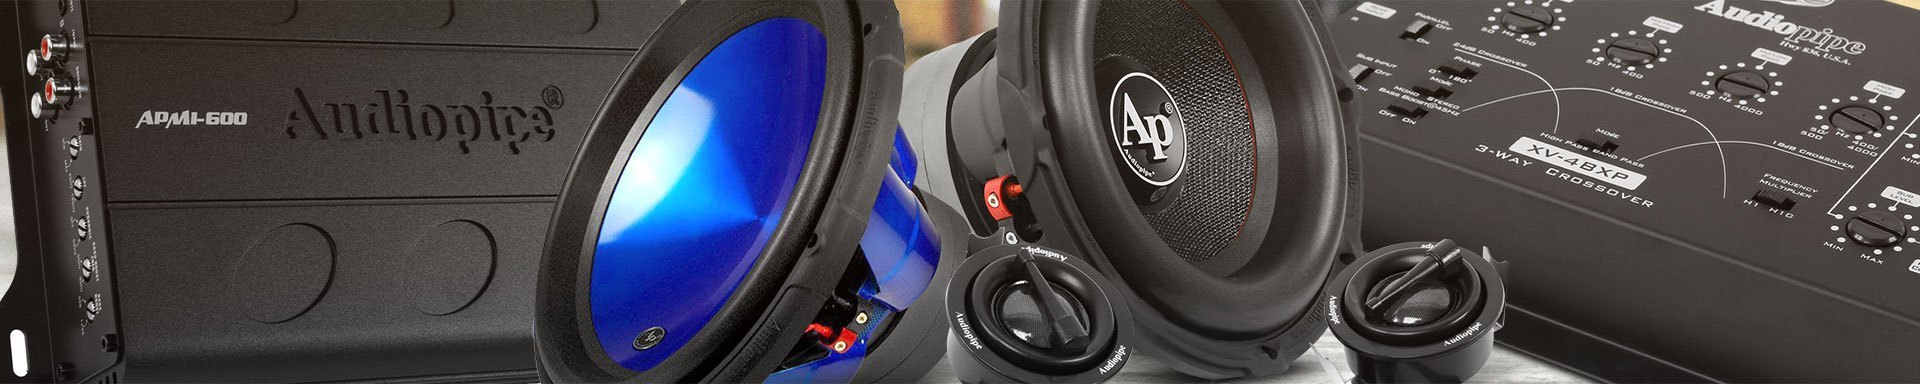 Audiopipe Cameras & Driver Safety